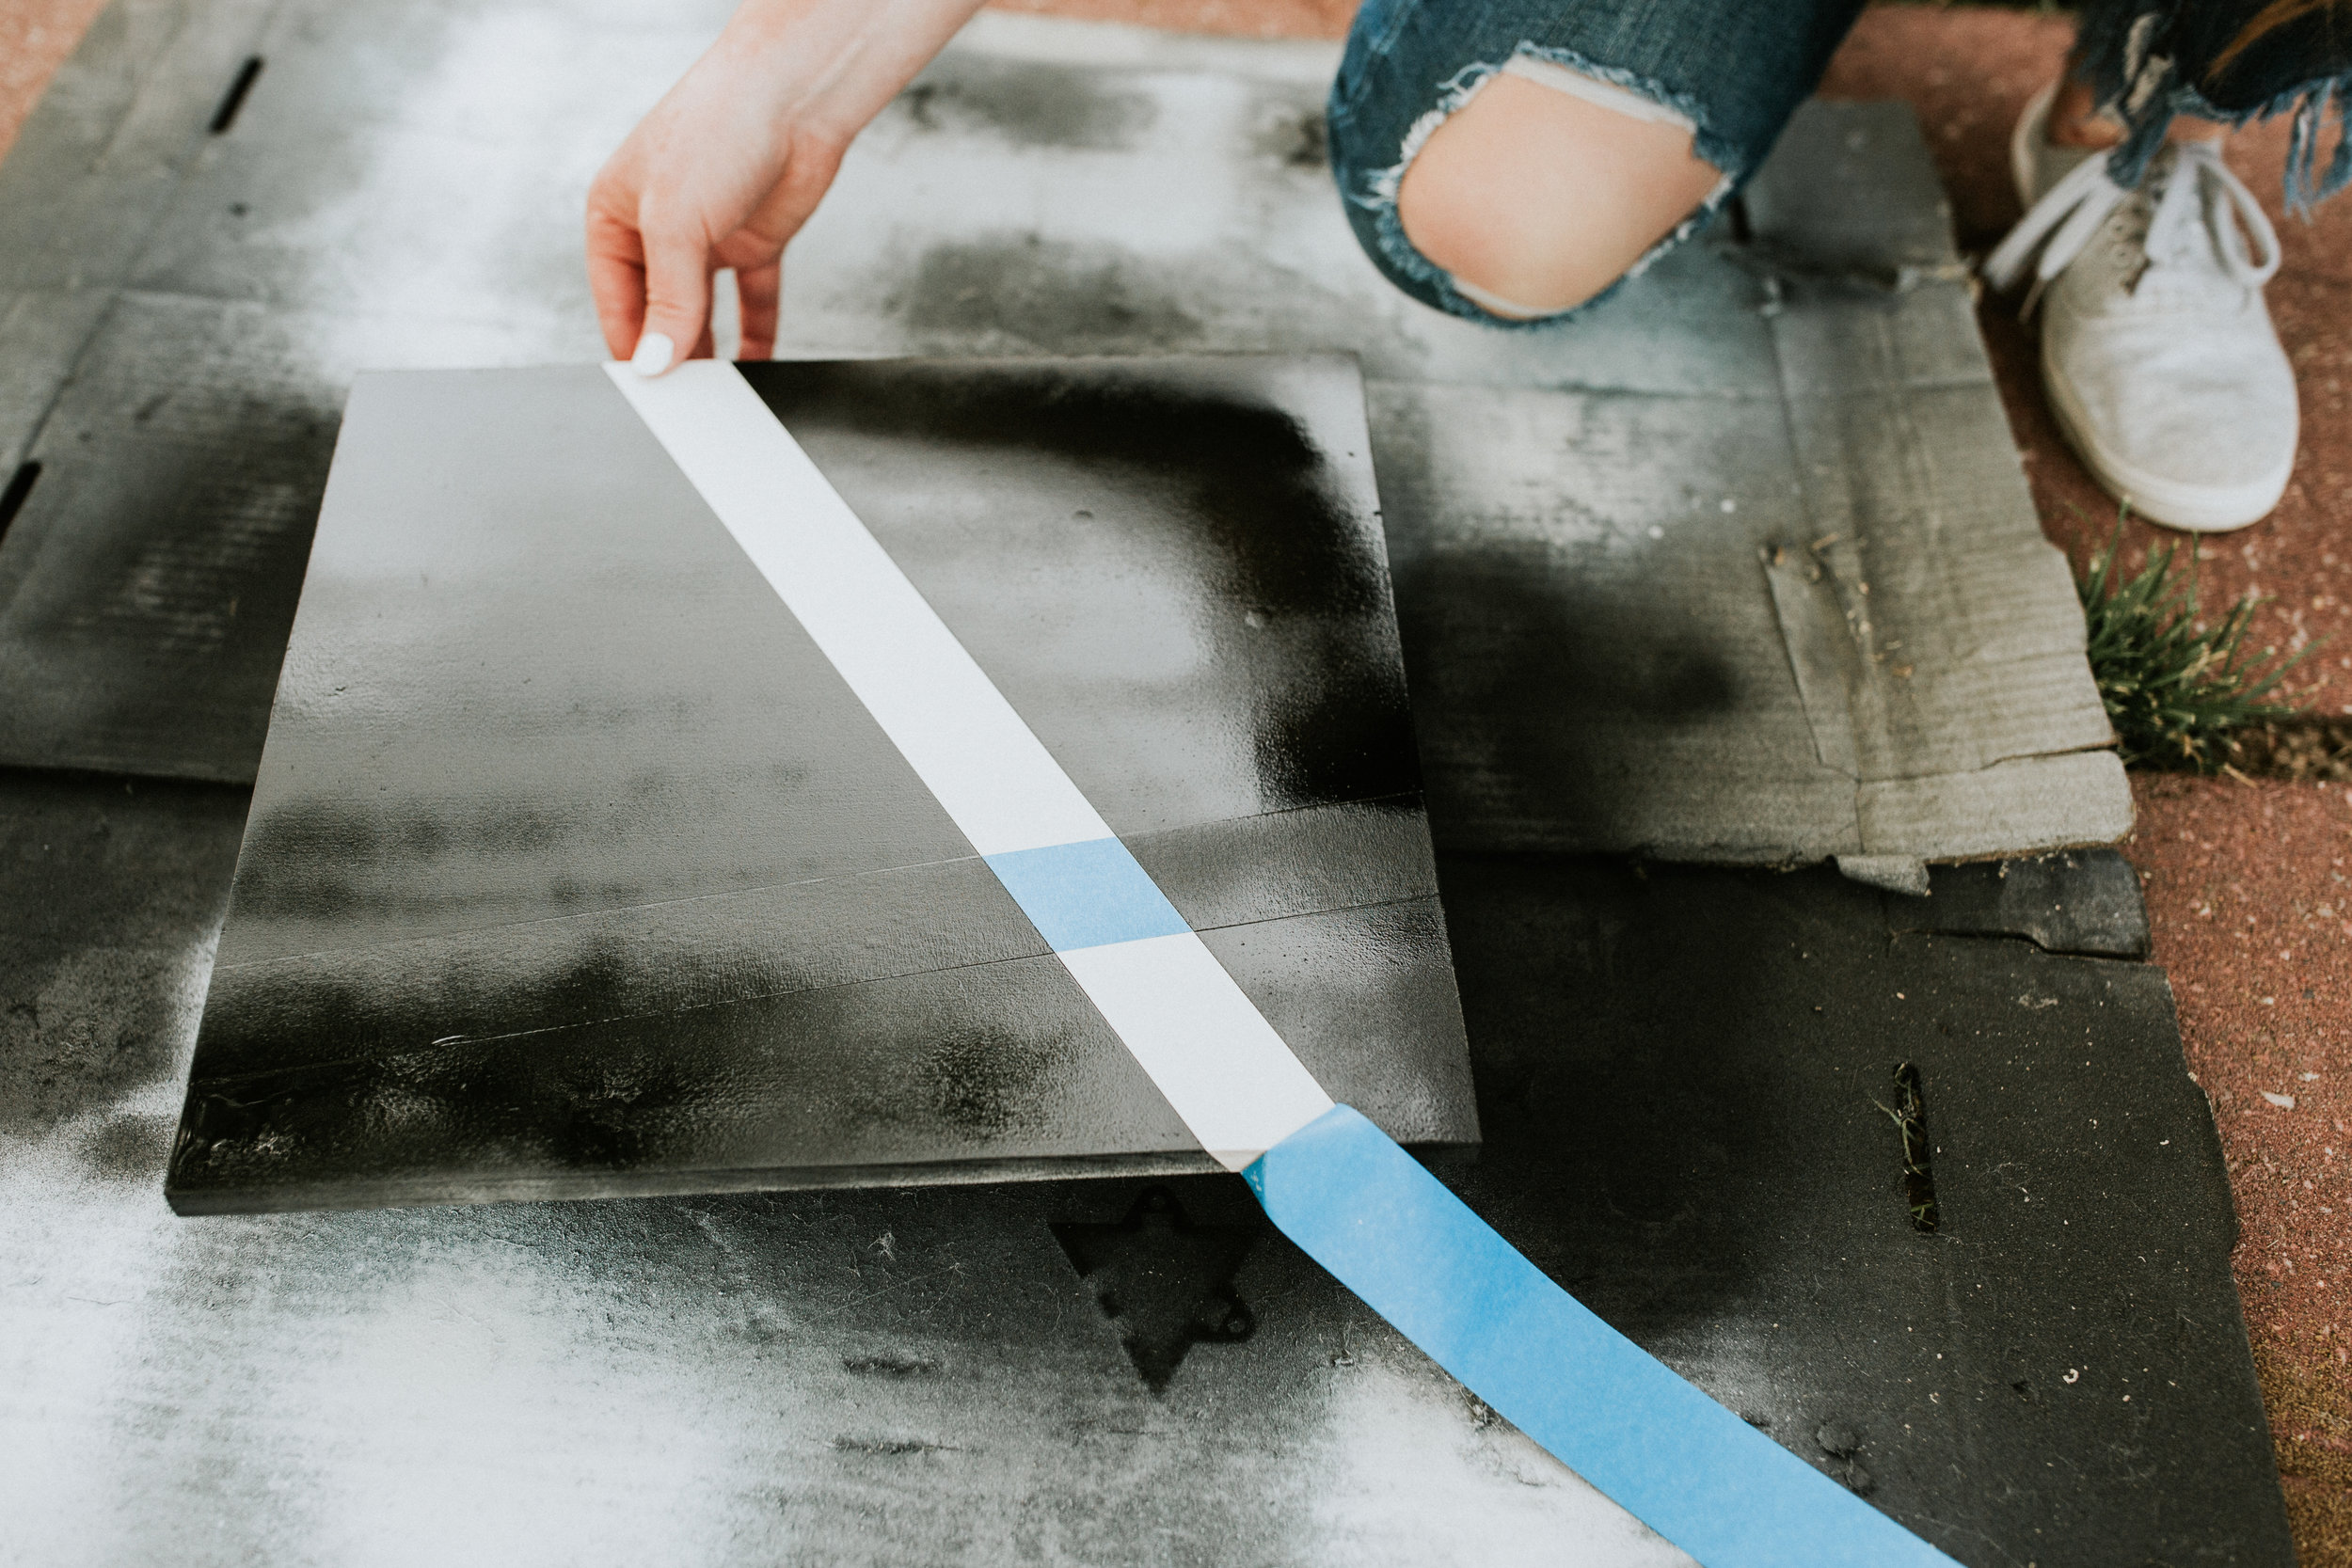 Step 5: Peel off your tape  - While the paint is still wet, carefully peel off your tape.